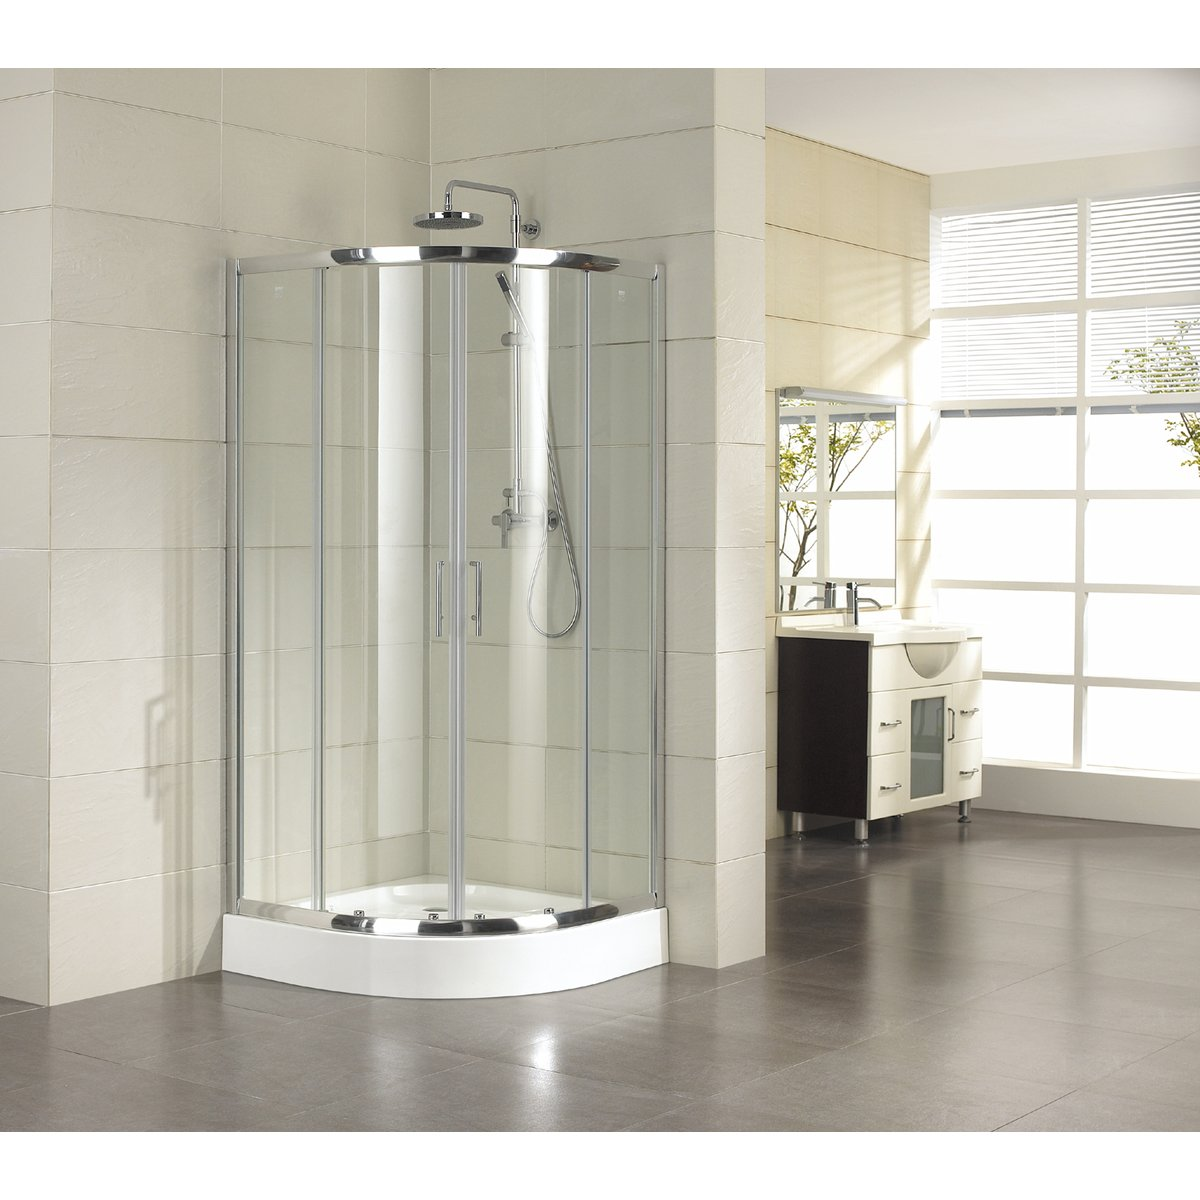 saniclass neptune 2142 cabine de douche 90x90x195cm quart de rond avec verre transparent. Black Bedroom Furniture Sets. Home Design Ideas